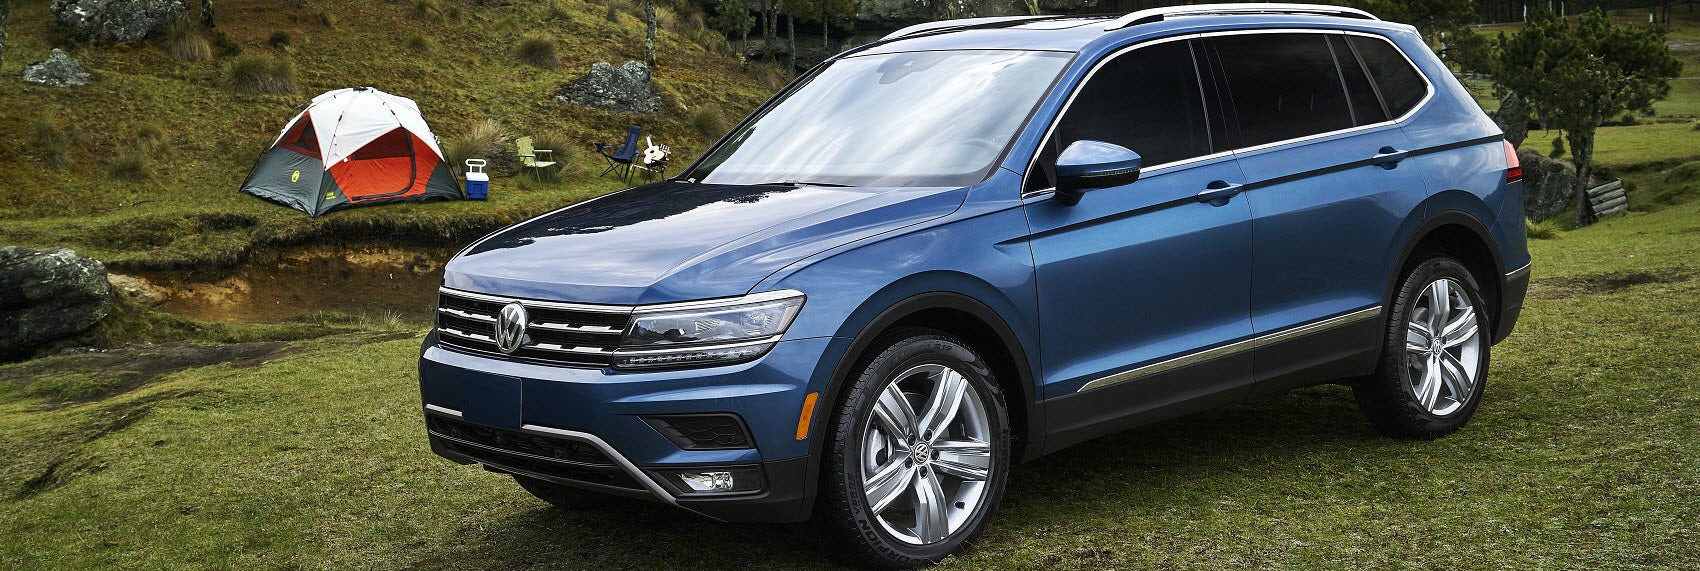 Guaranteed Financing Car Dealerships Near Me >> VW Tiguan for Sale Indiana | Andy Mohr Automotive